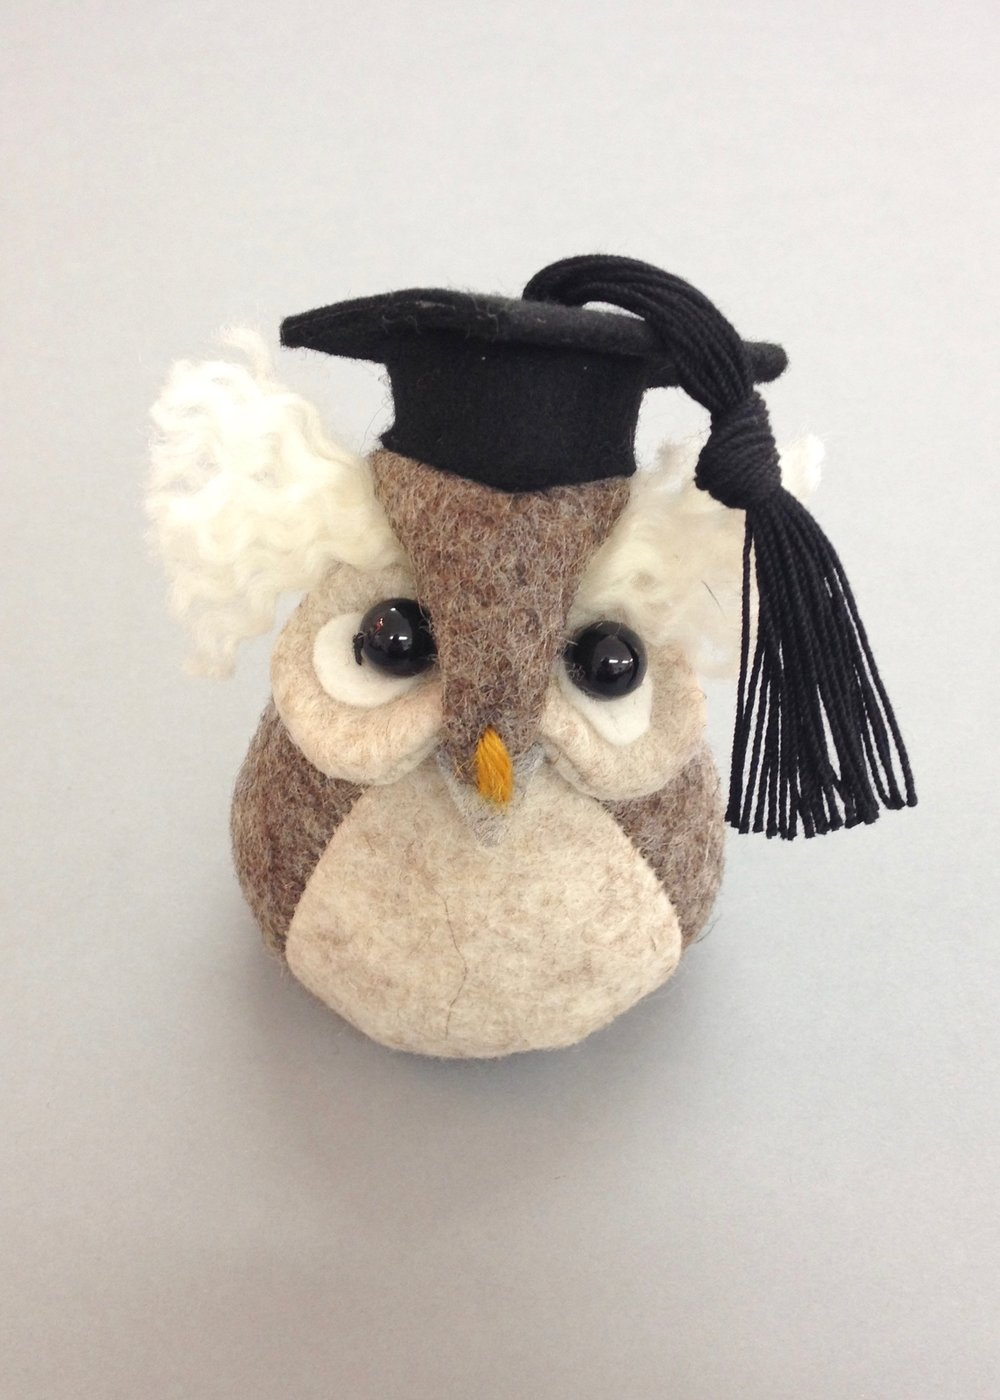 Ollie the Graduation Owl  felt